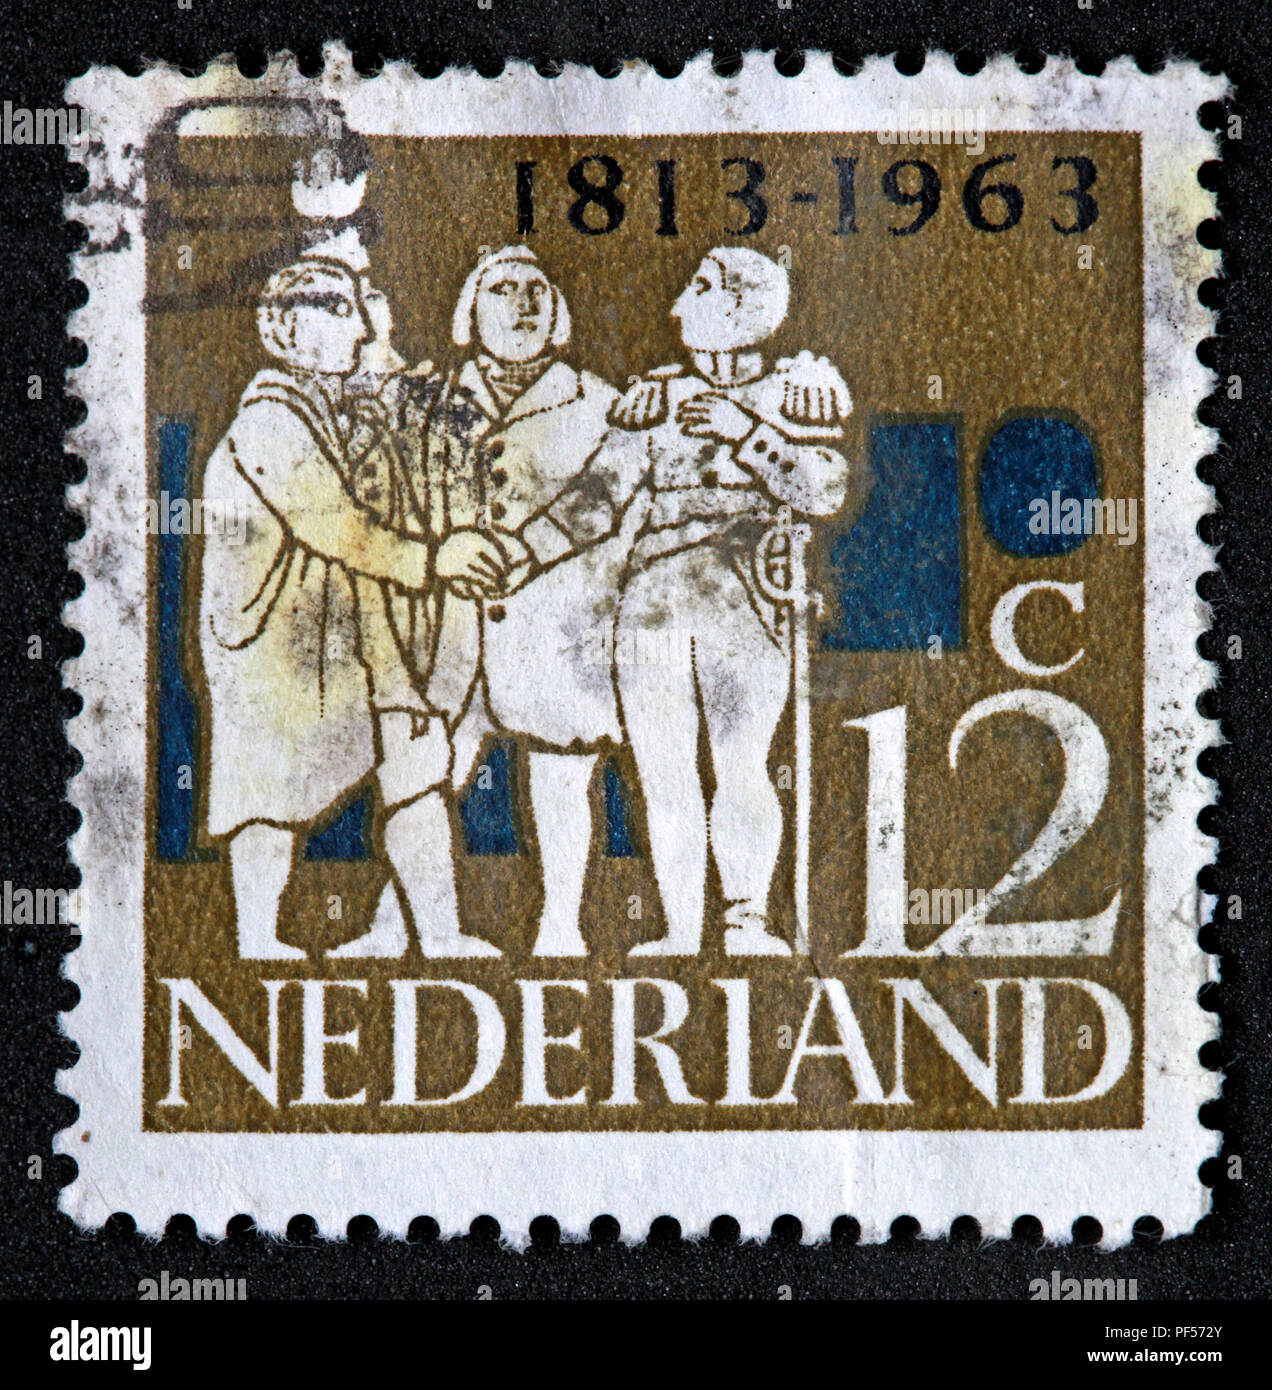 Gotonysmith,@Hotpixuk,Hotpixuk,rare old stamps,used stamps,Postal,letters,letter,communication,print,analogue,historic stamps,Used franked Nederland Stamp,Netherlands Stamp,Used franked,Netherlands,brown,12c,12cent